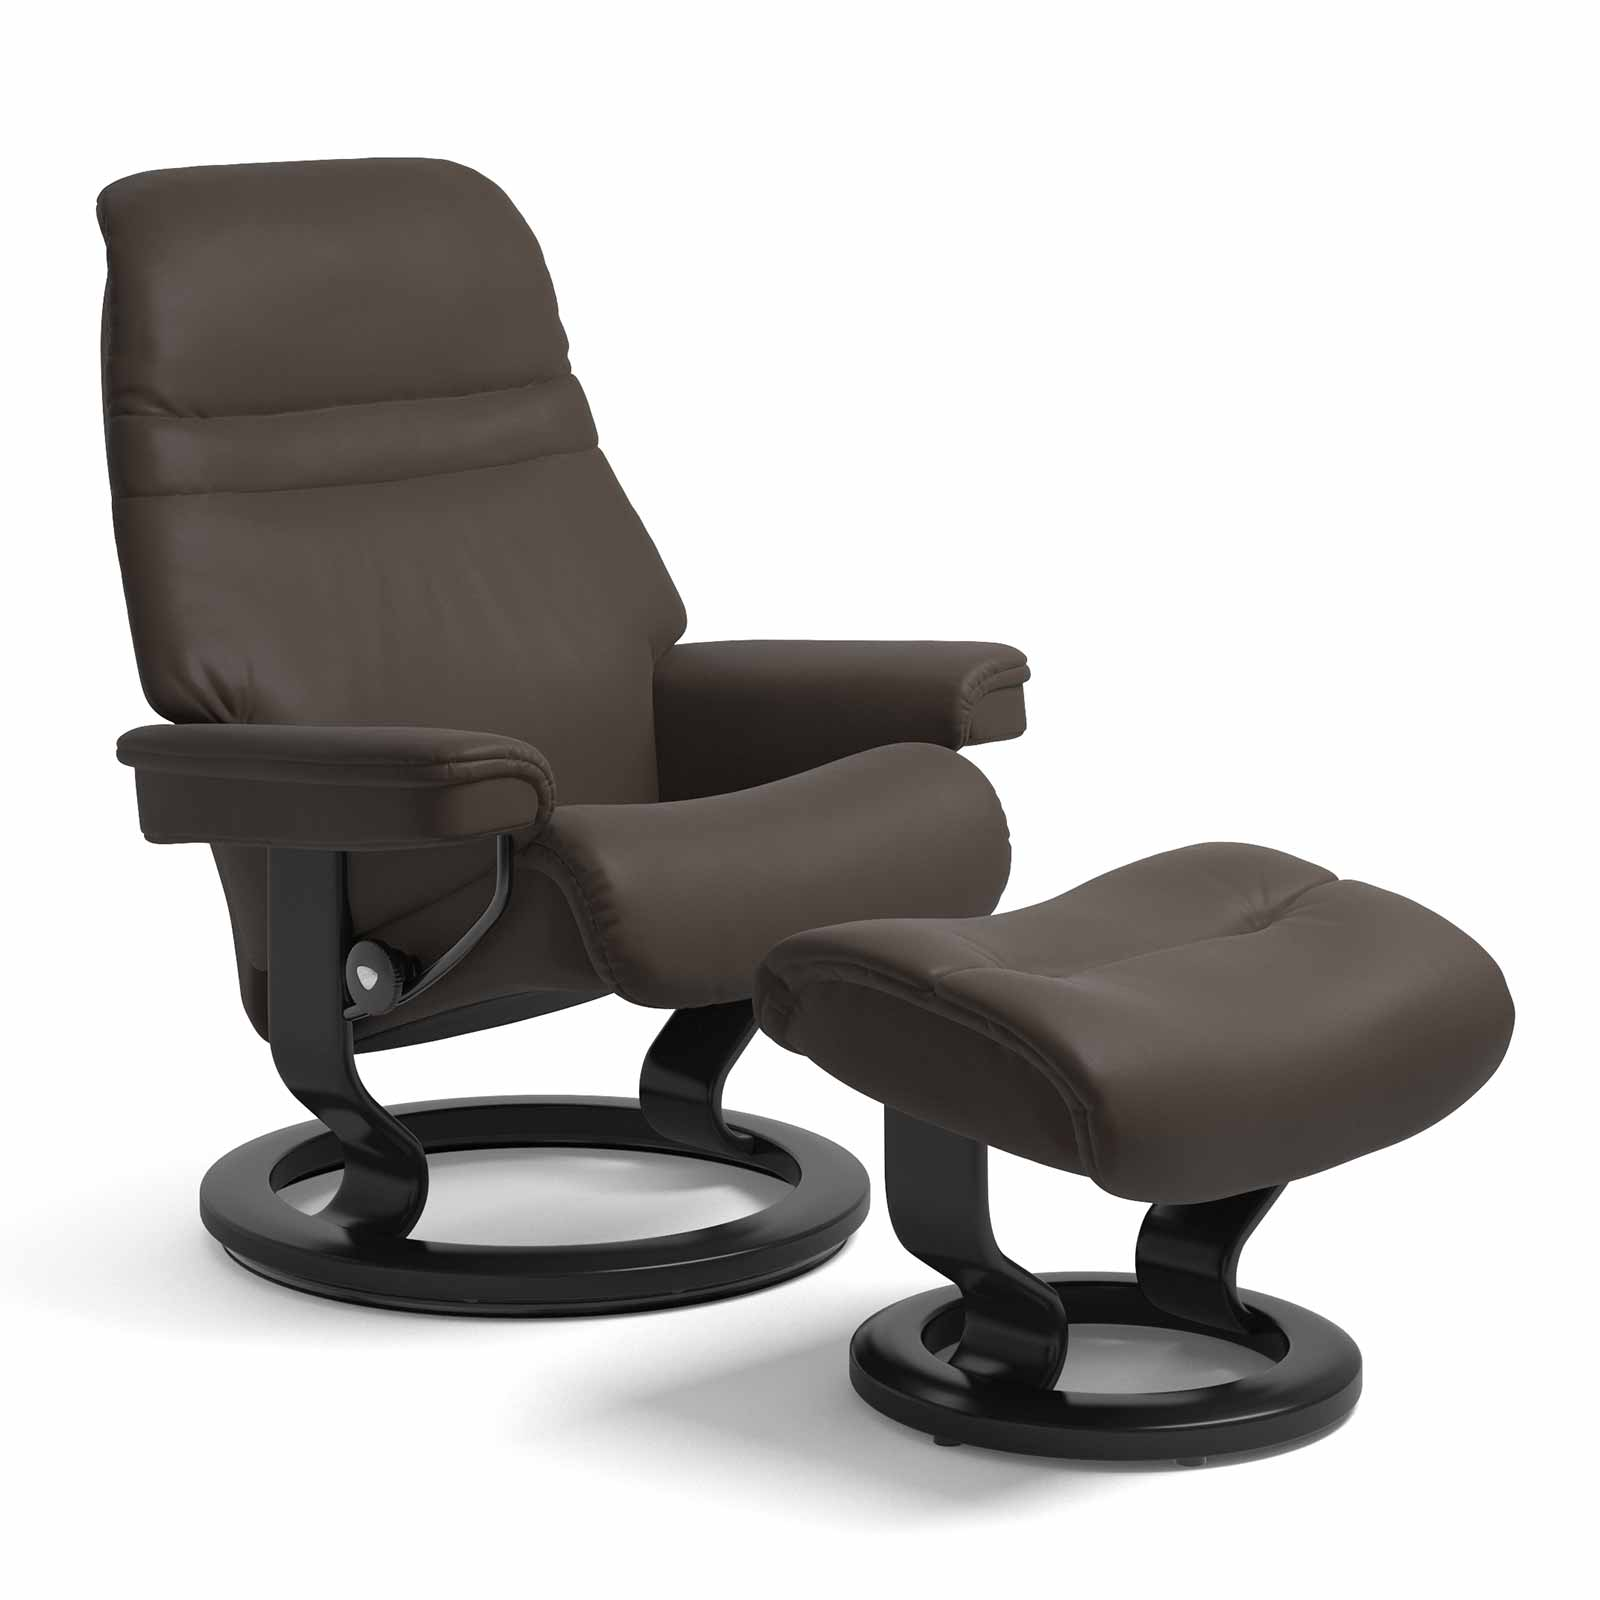 Hocker Leder Stressless Sessel Sunrise Classic Leder Batick Braun Mit Hocker